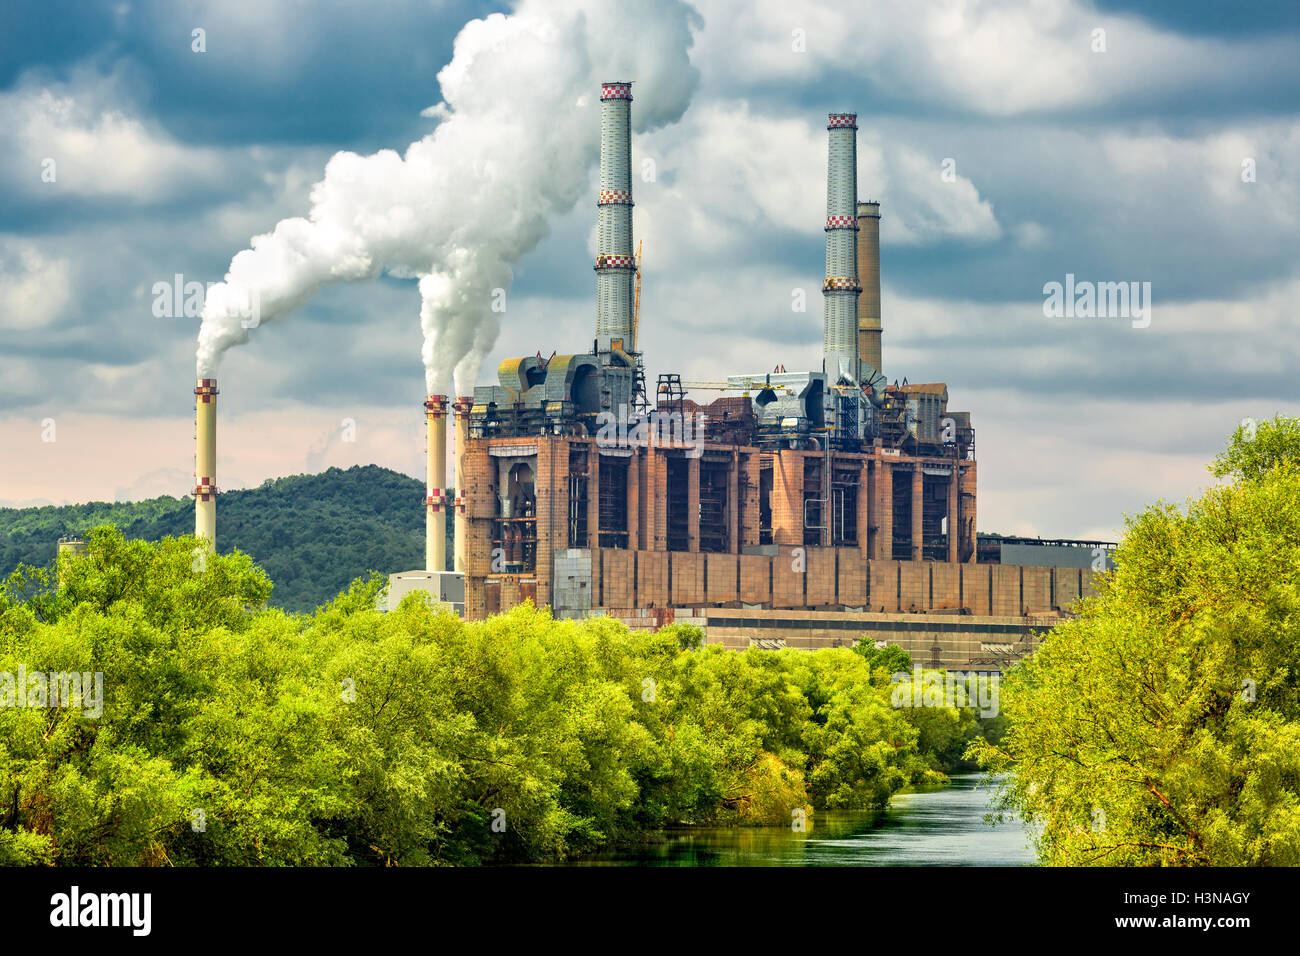 Coal power station in Gorj County, Romania - Stock Image